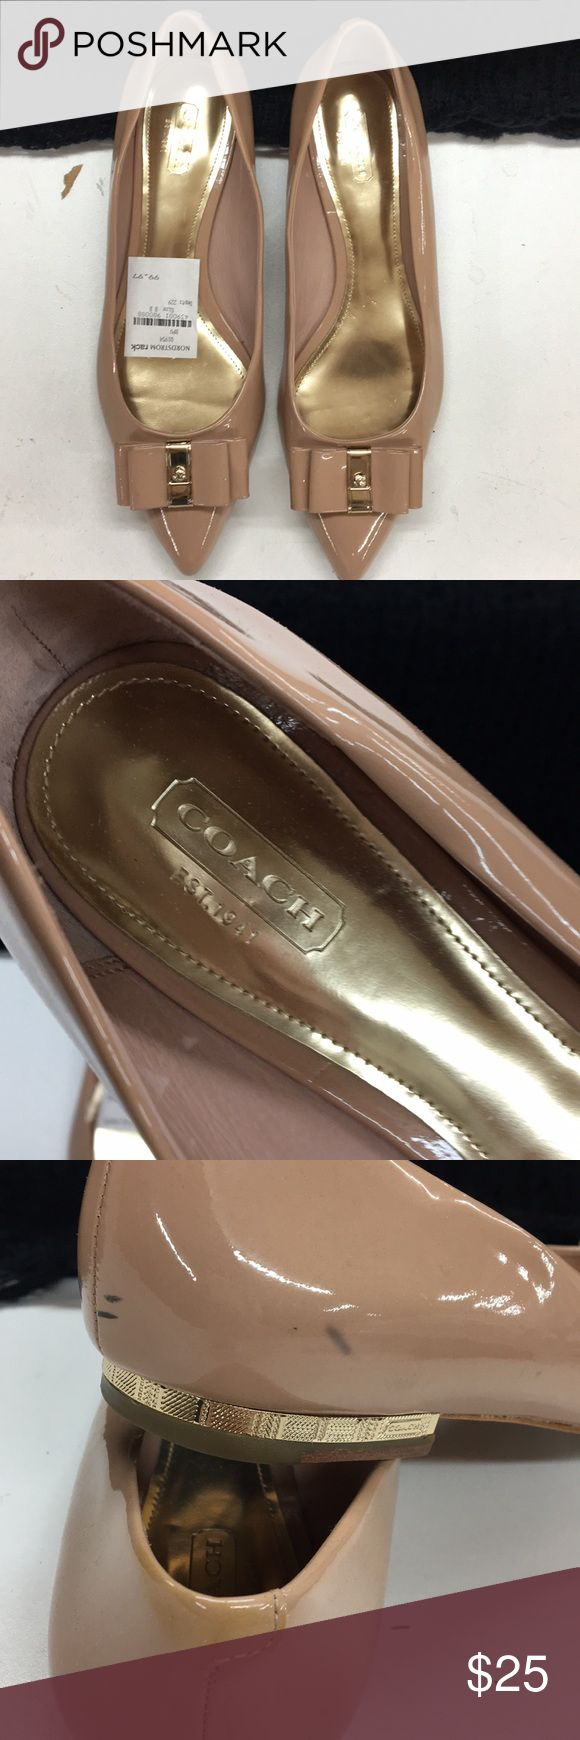 Coach flats 🌸 Used- Coach flats size 8. Nude/blush color...soooo cute! They have some scuff as shown in the pictures. The bottoms are as shown in the pictures! Ask if you have any questions :) Coach Shoes Flats & Loafers